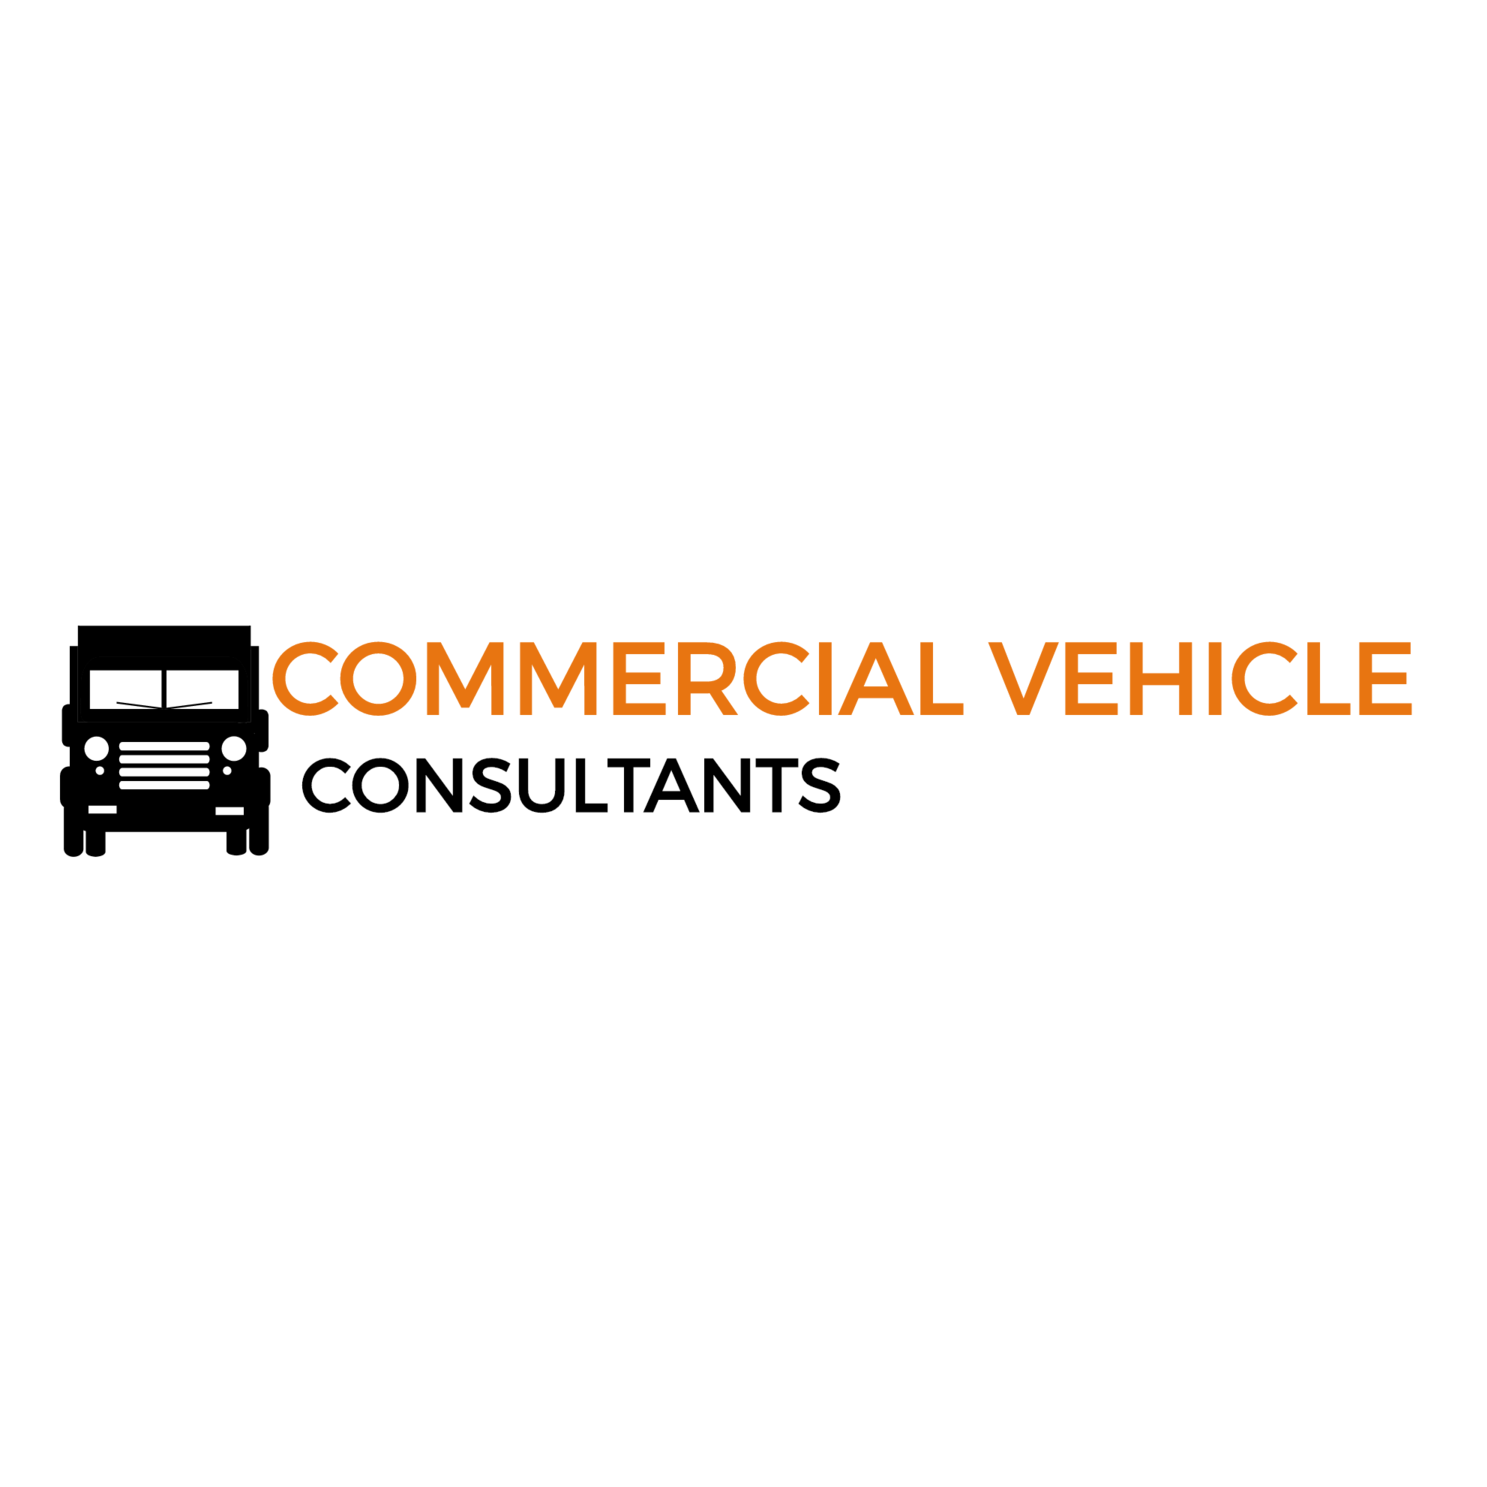 Commercial Vehicle Consultants